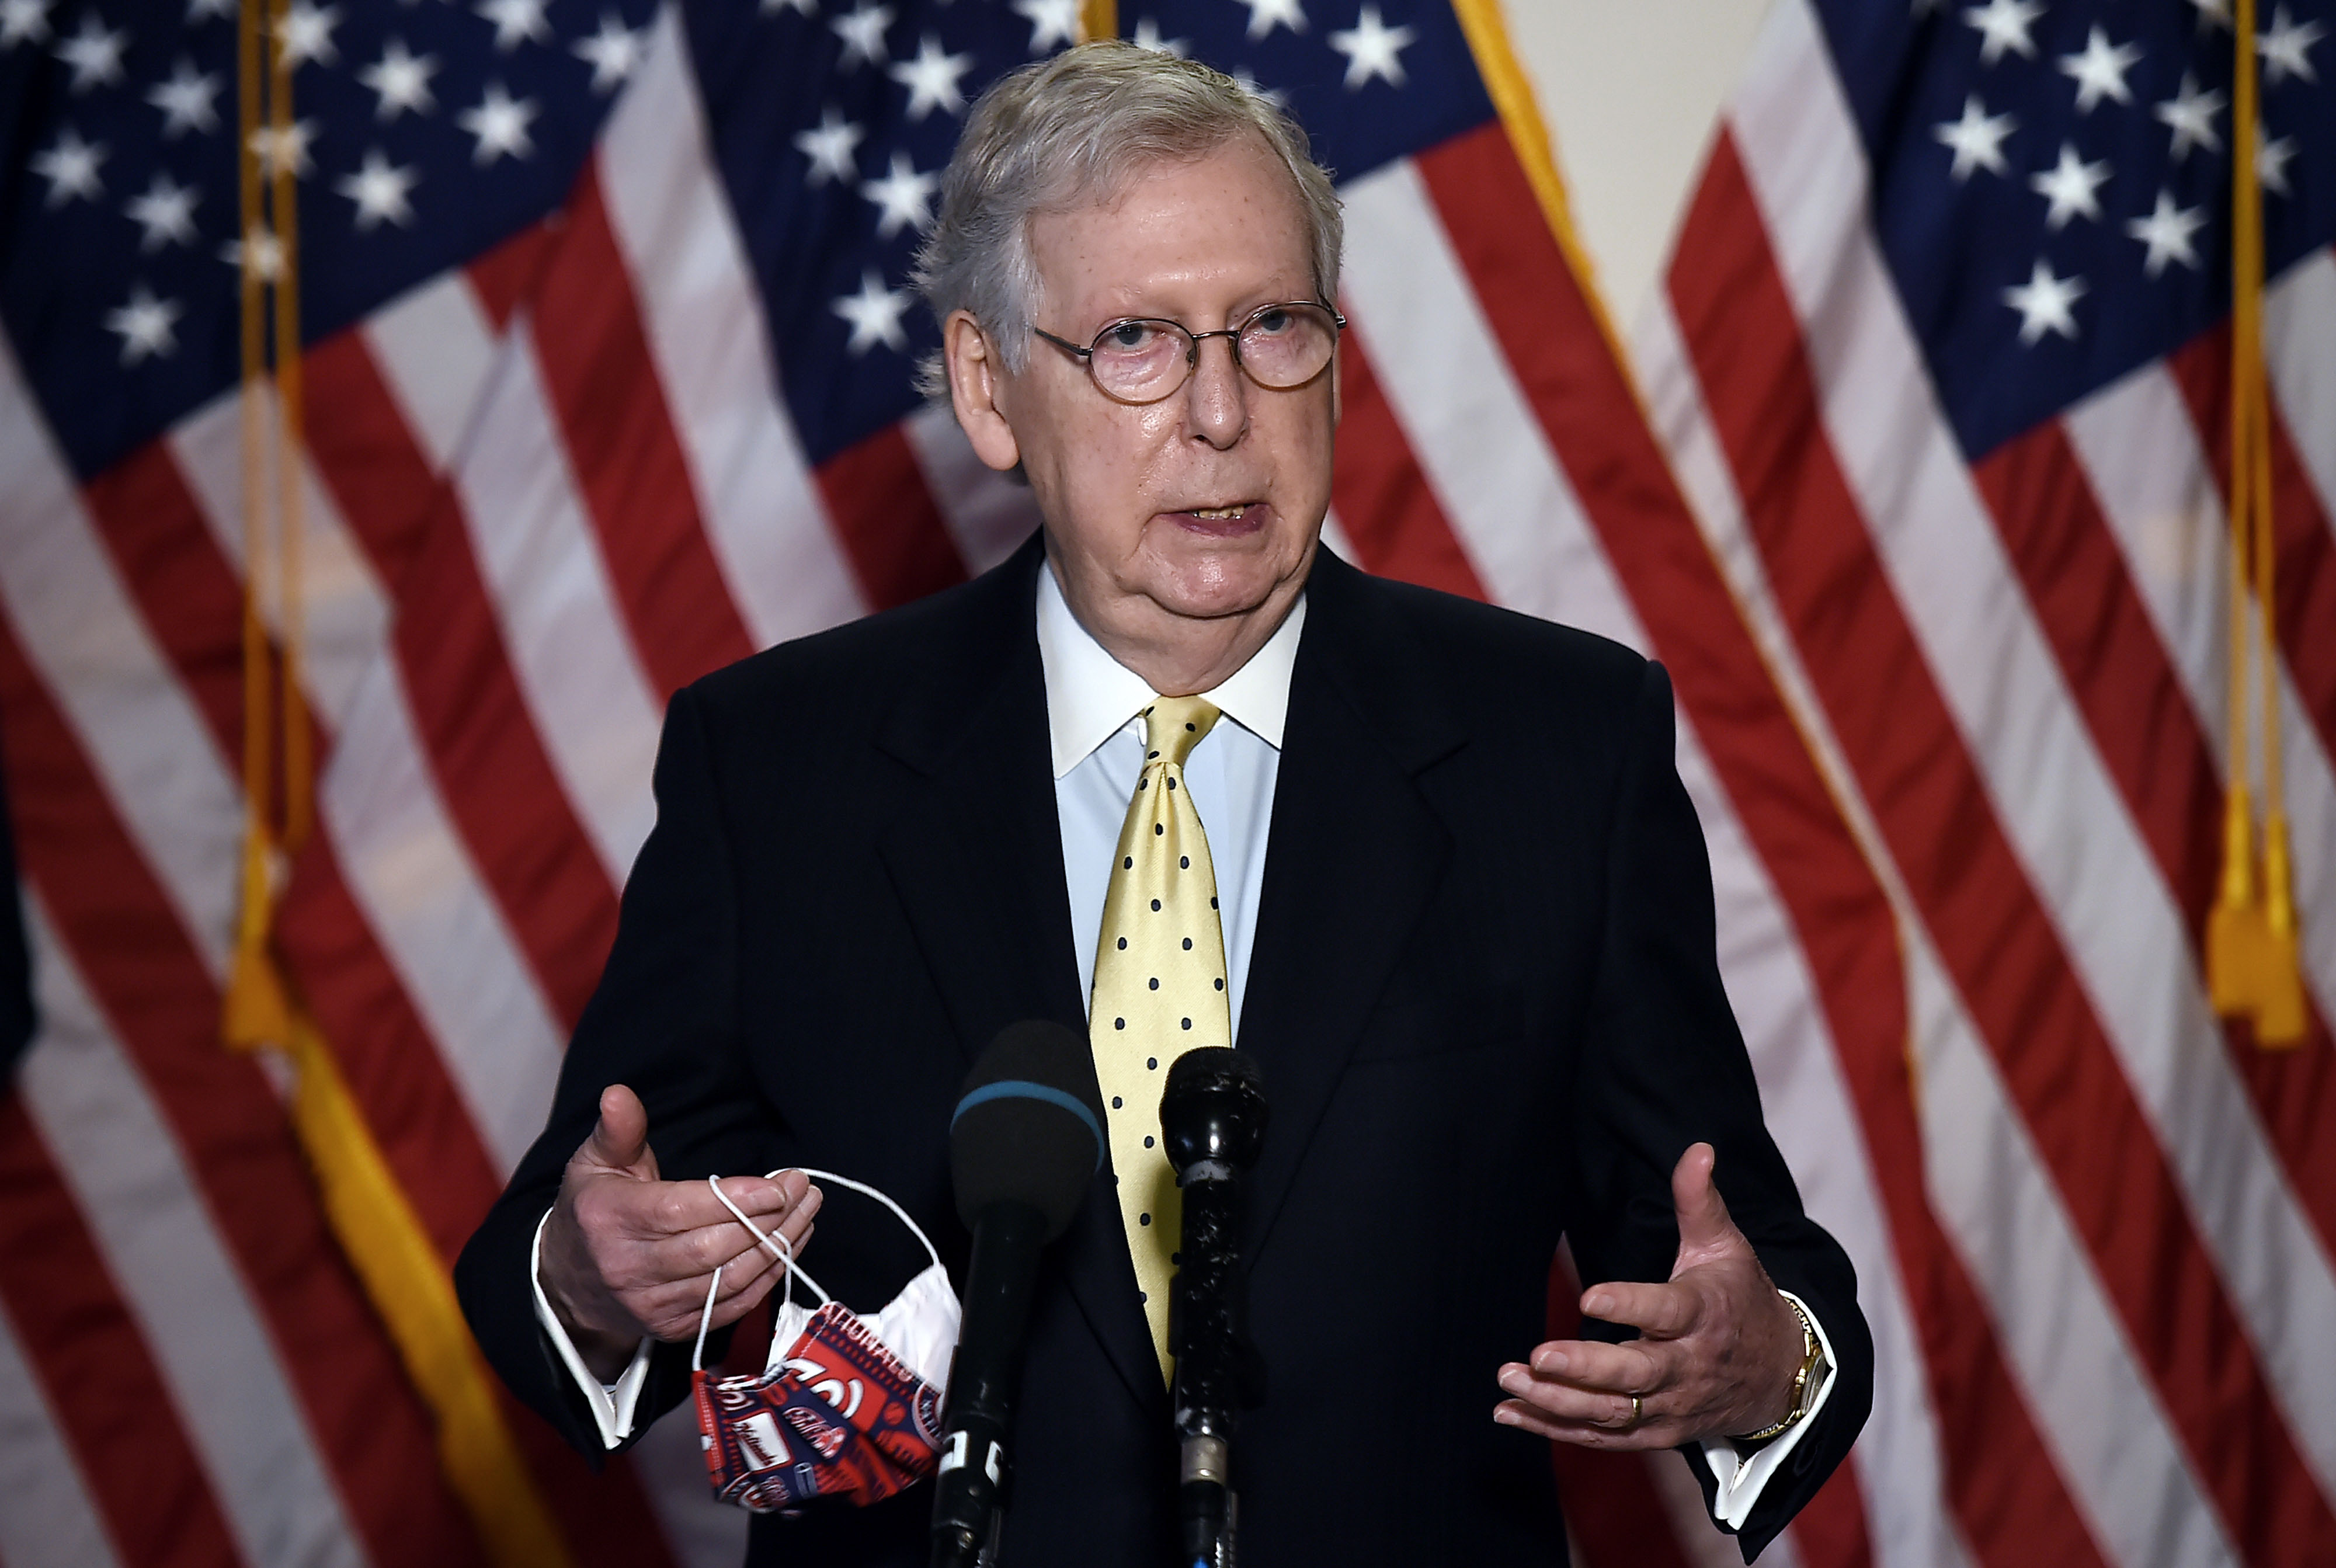 Senate Majority Leader Mitch McConnell speaks to the press in Washington, DC, on July 21.